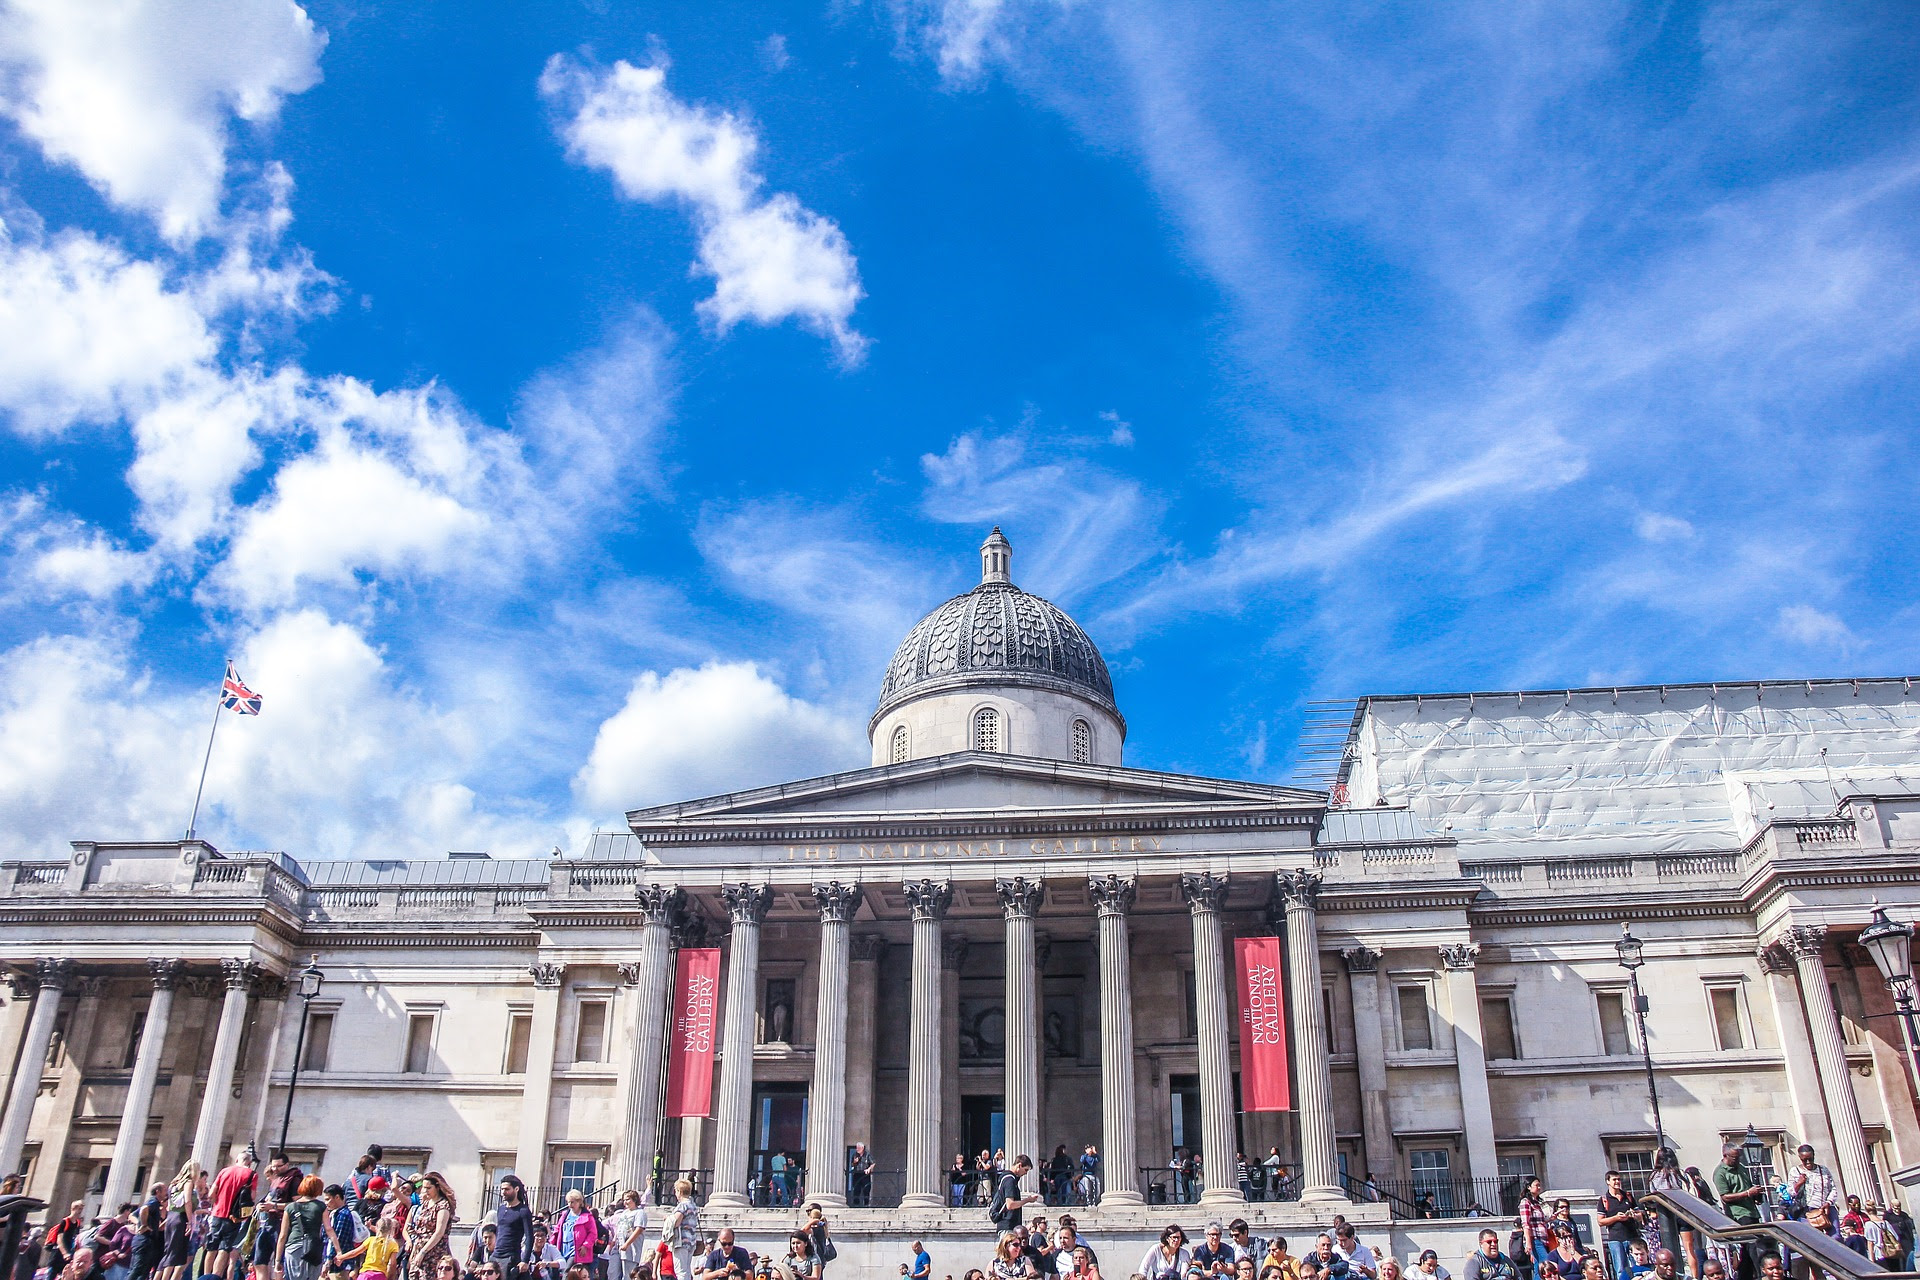 The National Gallery, popular tourist place in London